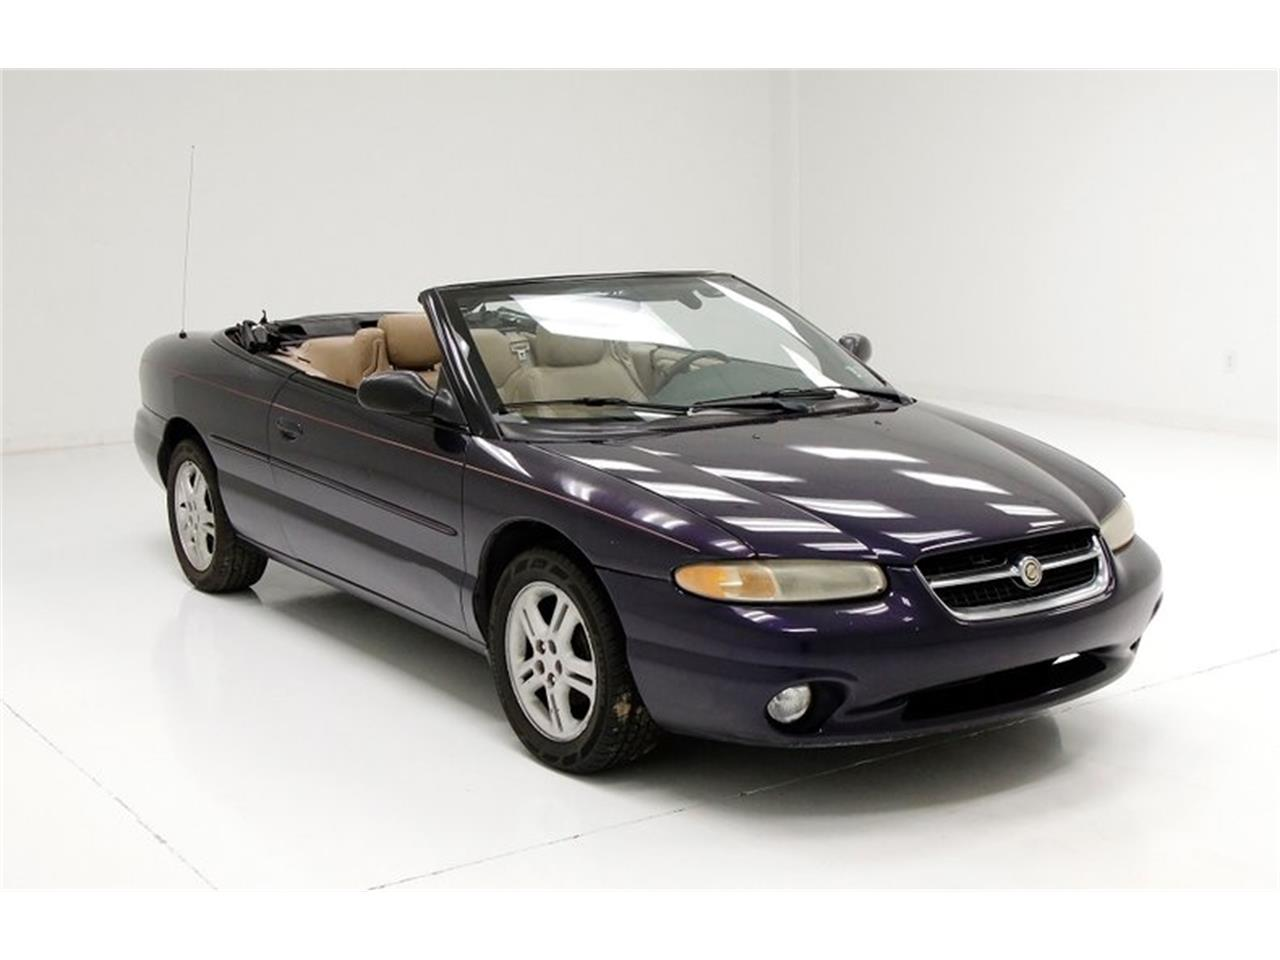 Large Picture of 1997 Chrysler Sebring Offered by Classic Auto Mall - LVUB